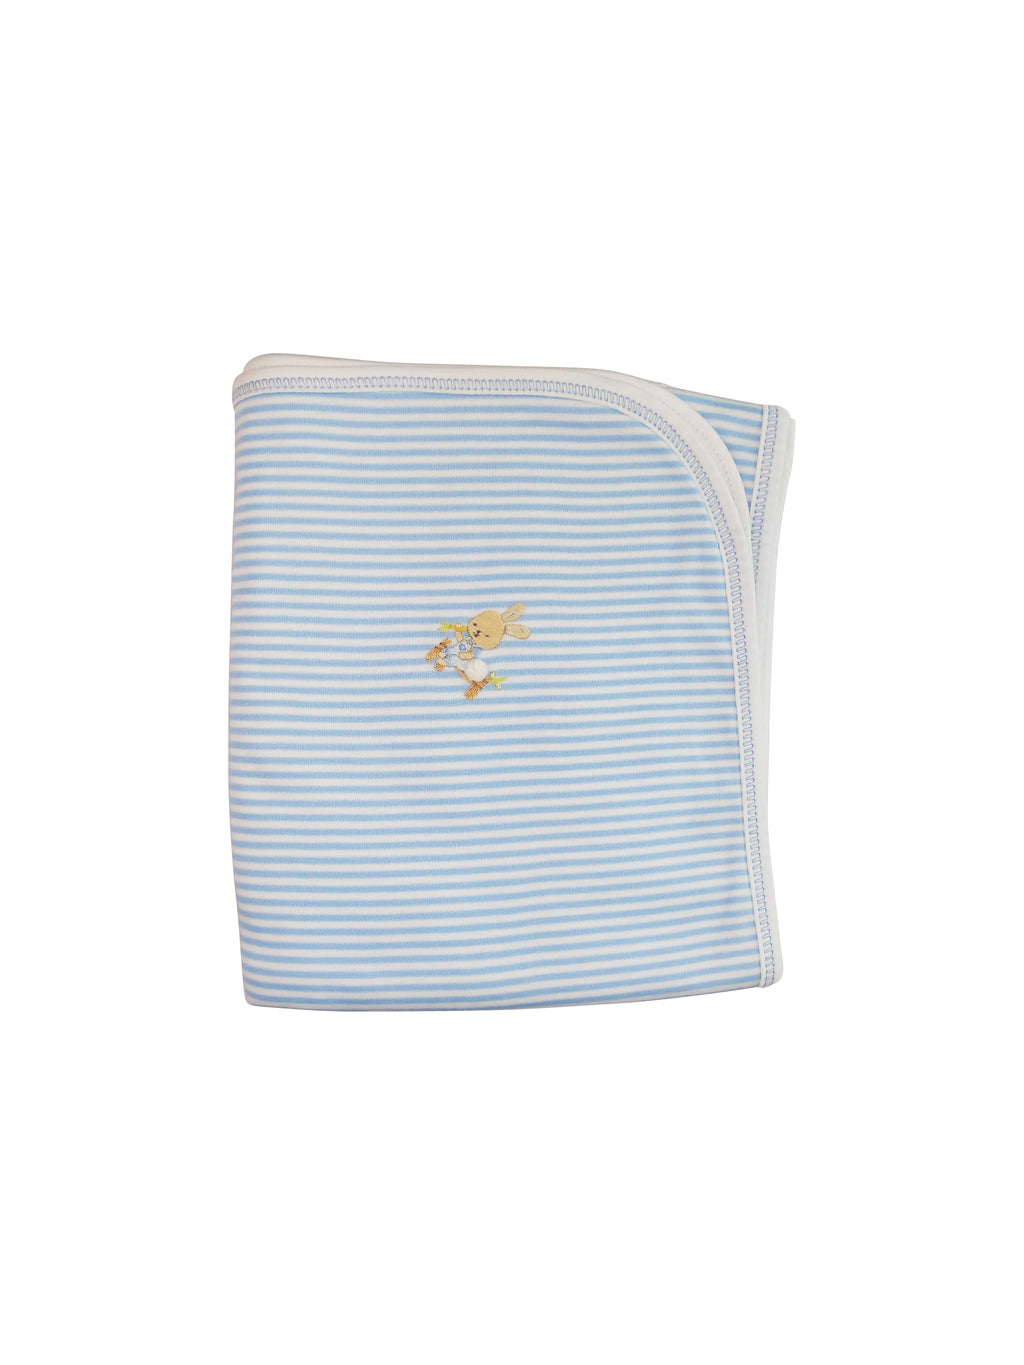 Baby Boy's Blue Striped Bunny Blanket - Little Threads Inc. Children's Clothing